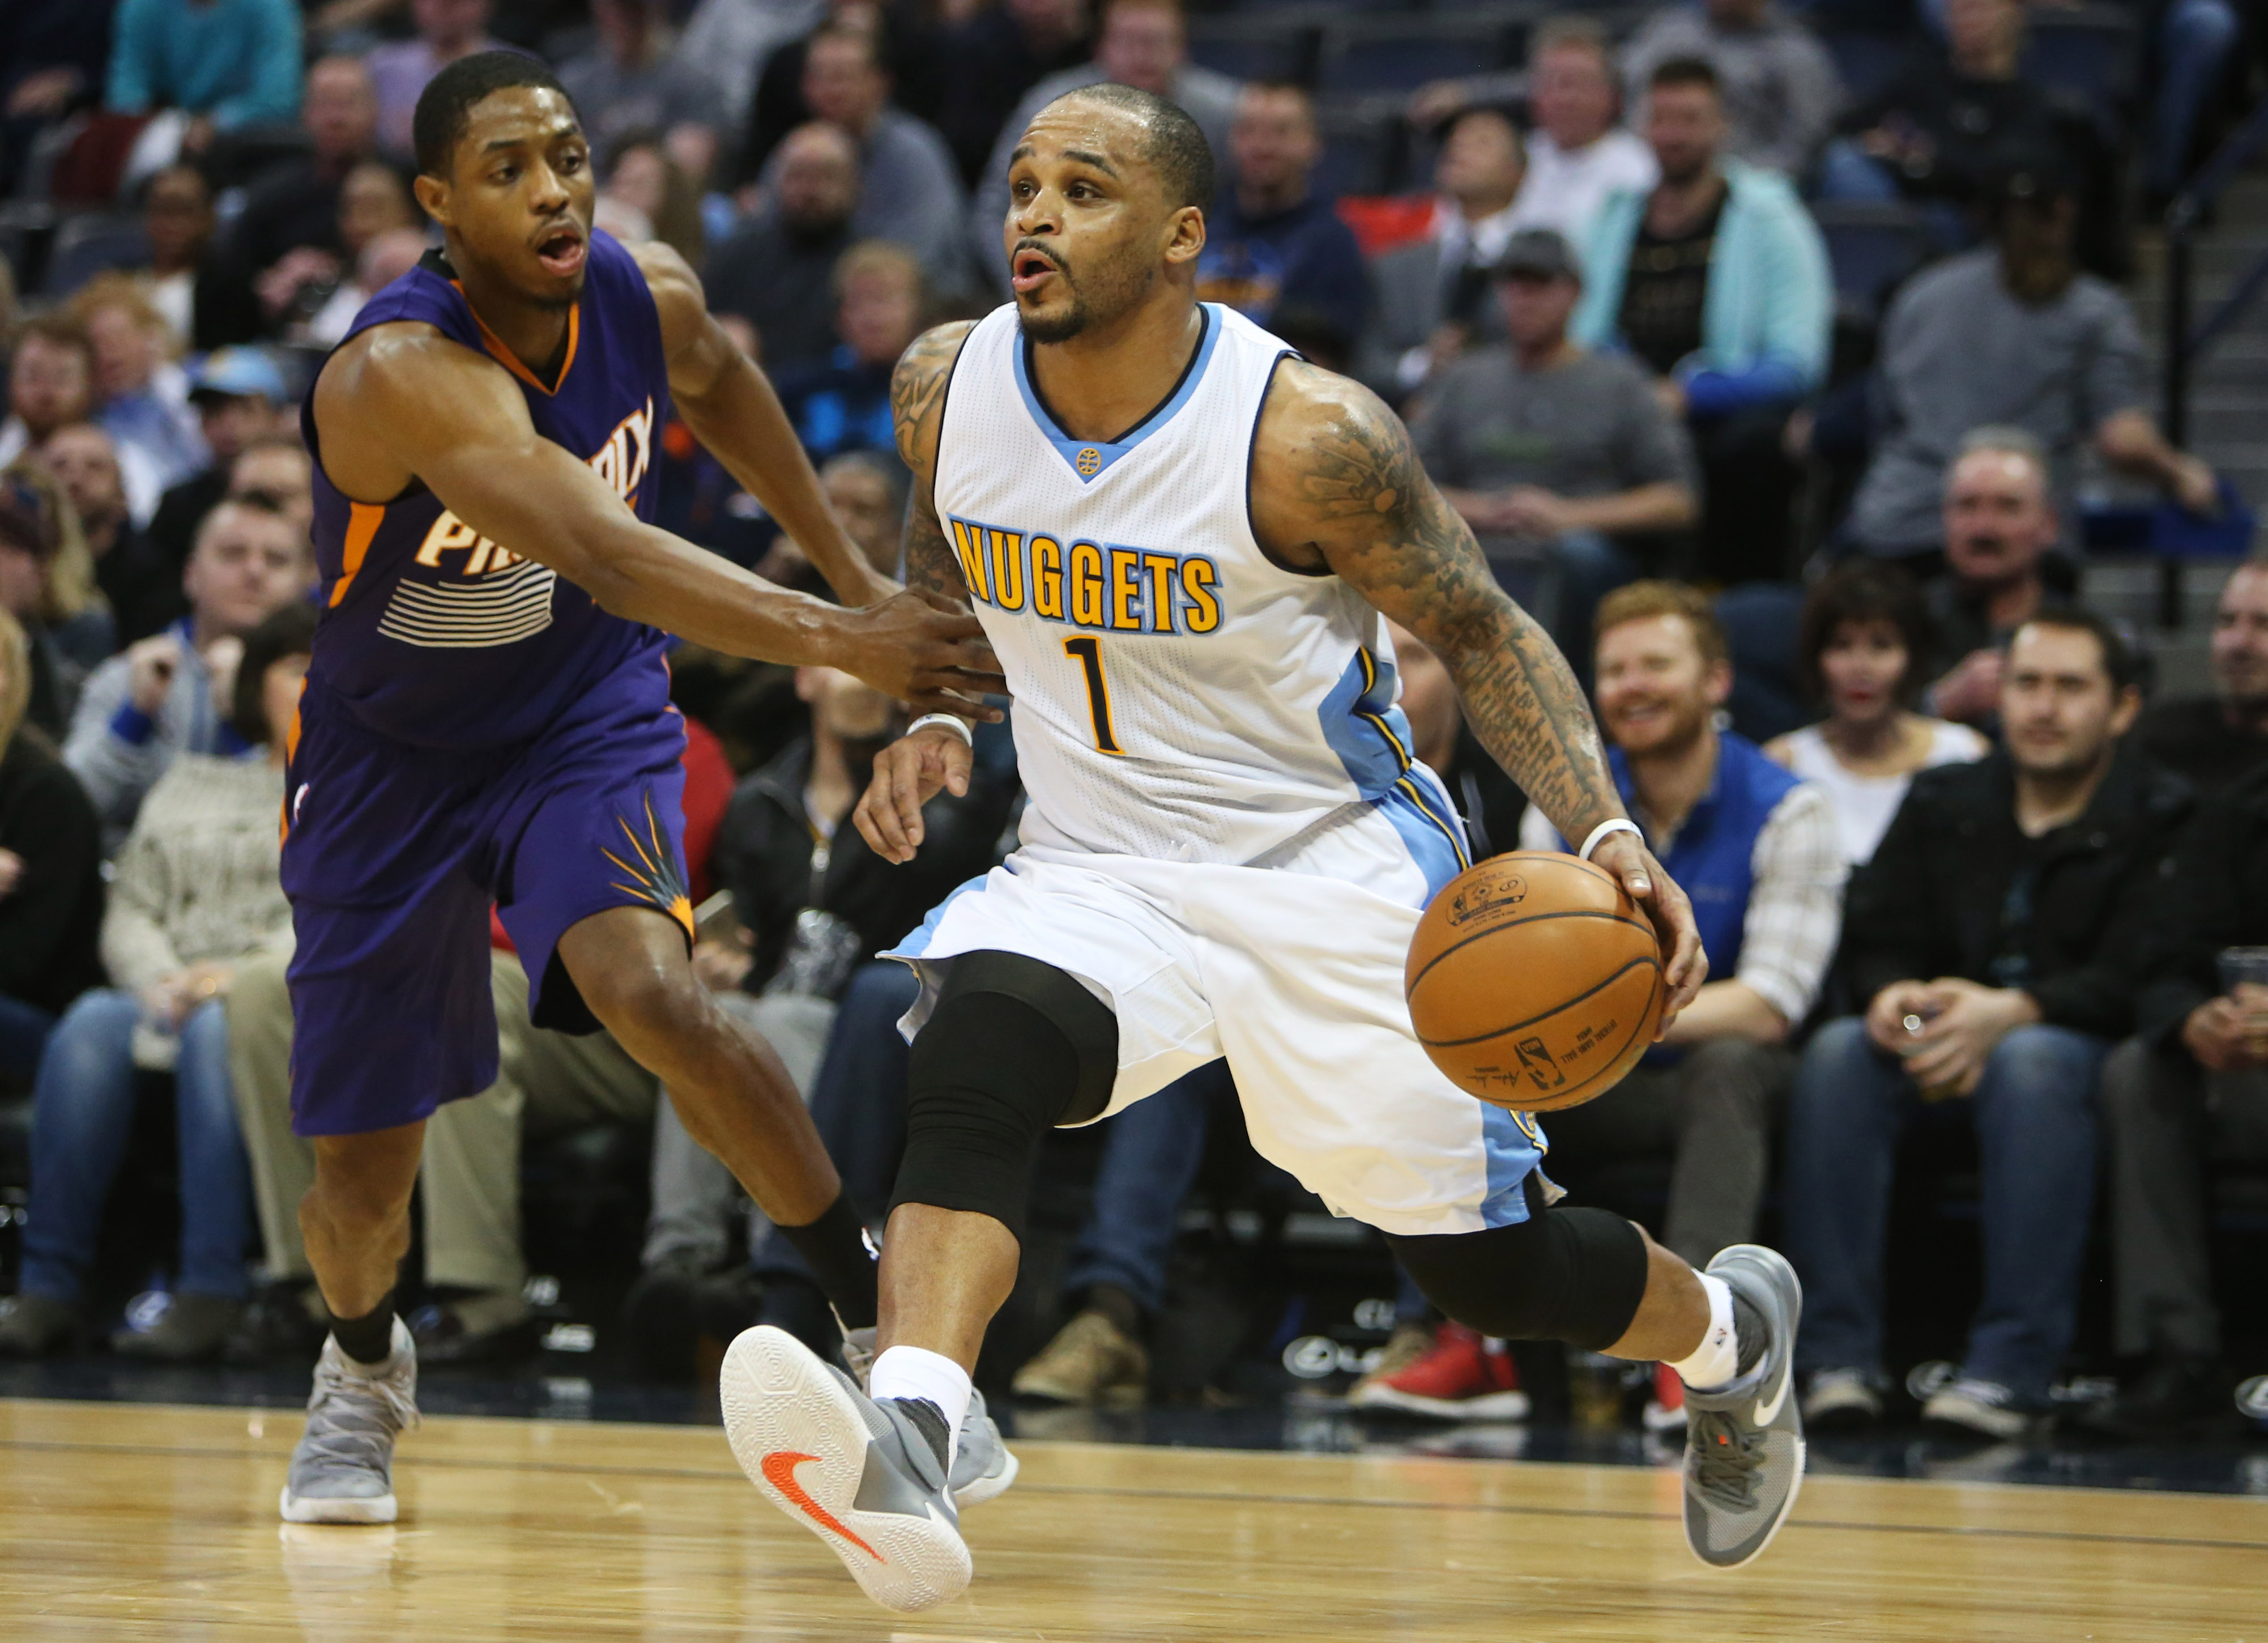 Jameer Nelson named to Big 5 Hall of Fame Class of 2017